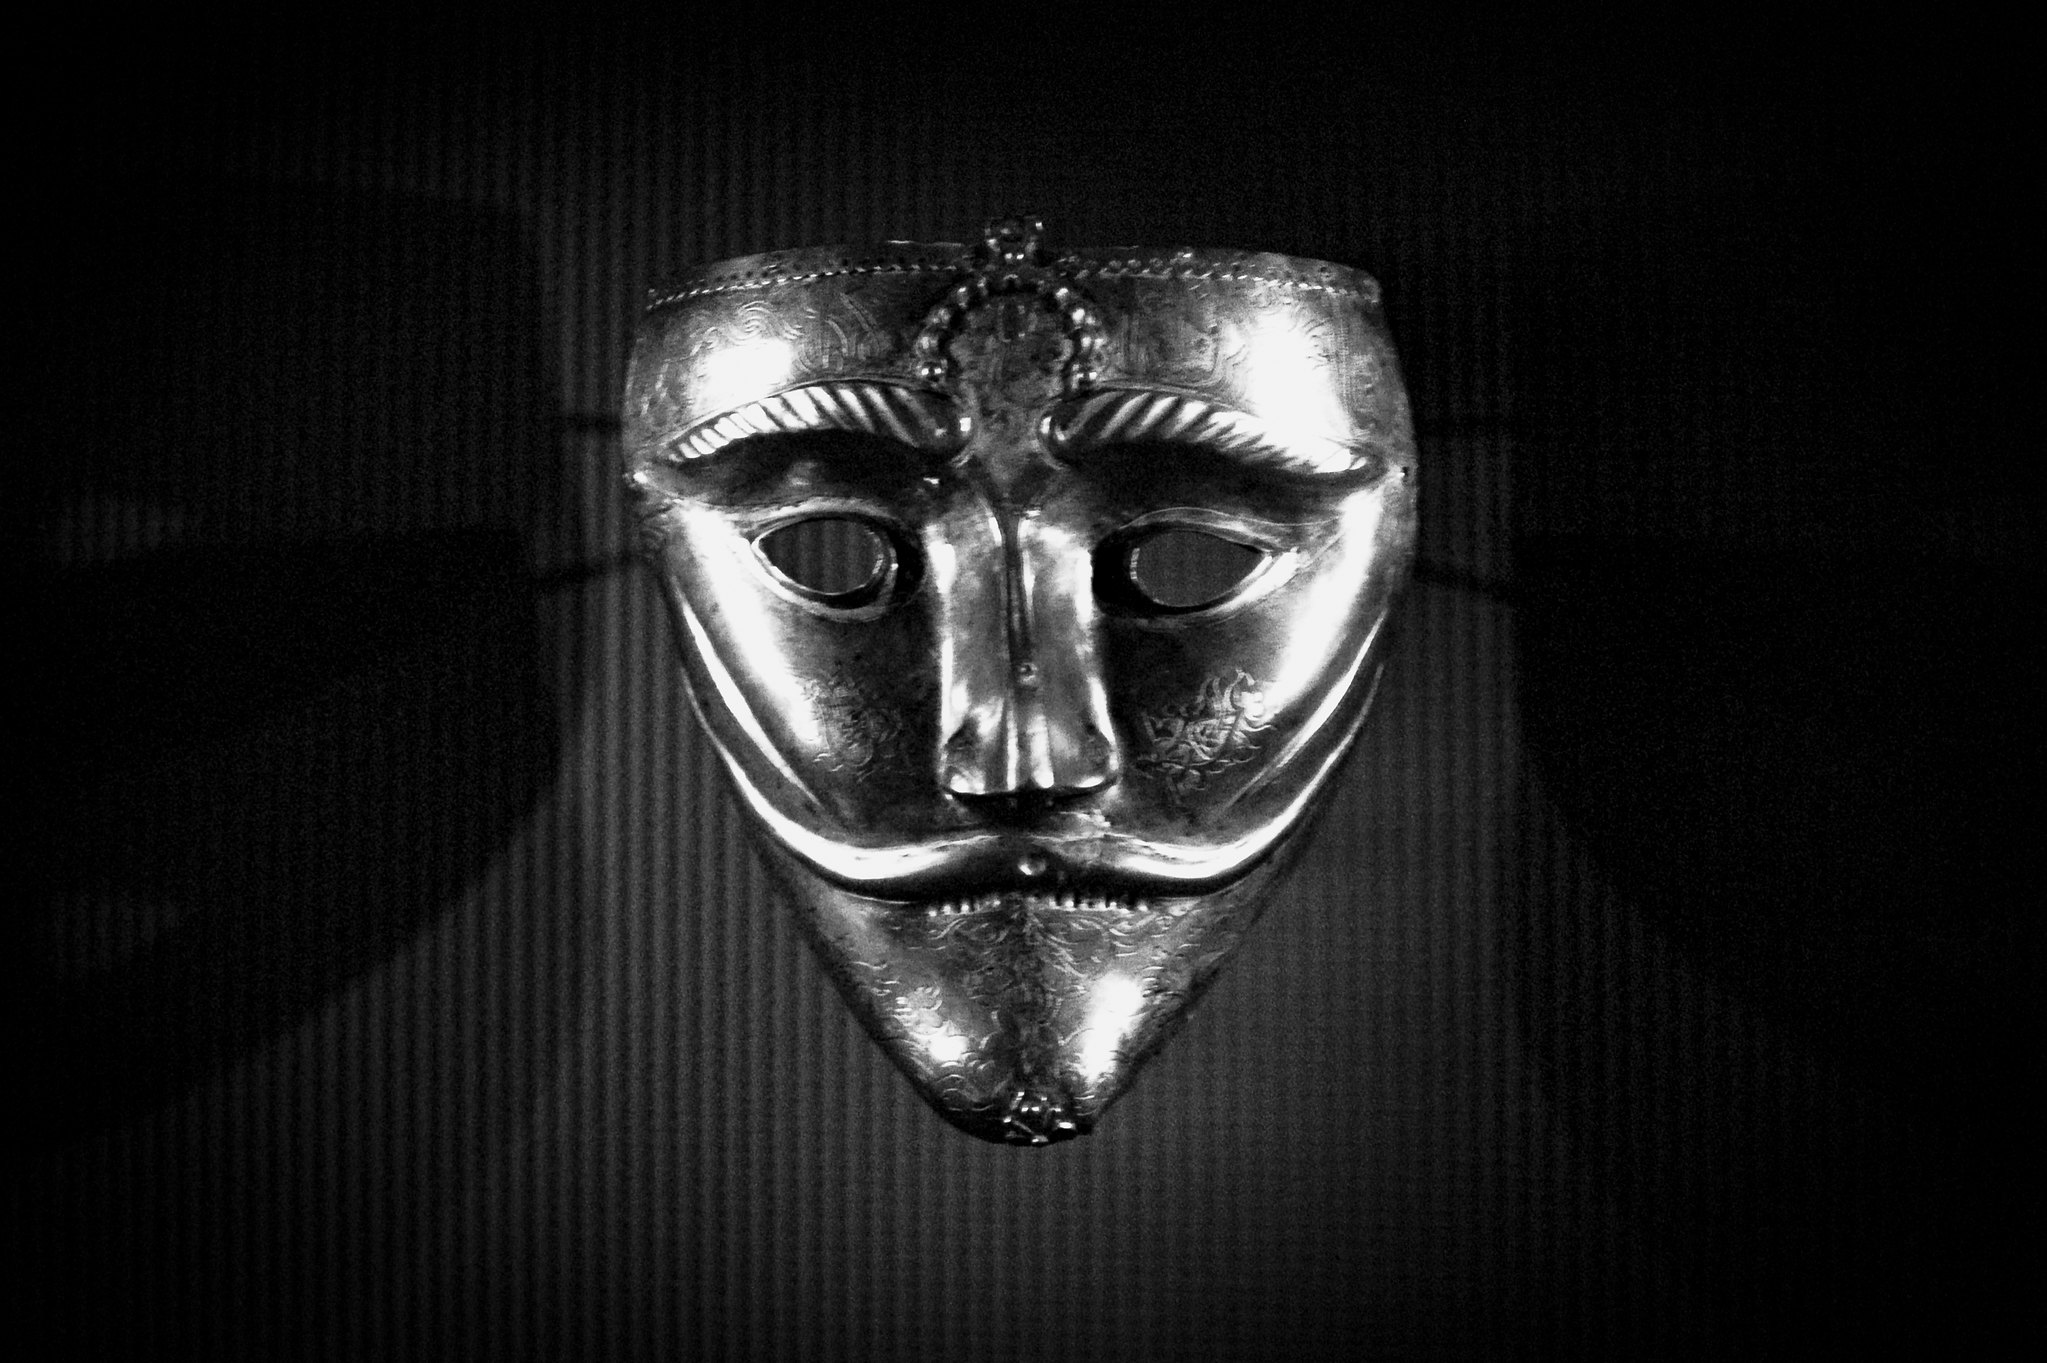 War Mask, Museum of Islamic Art